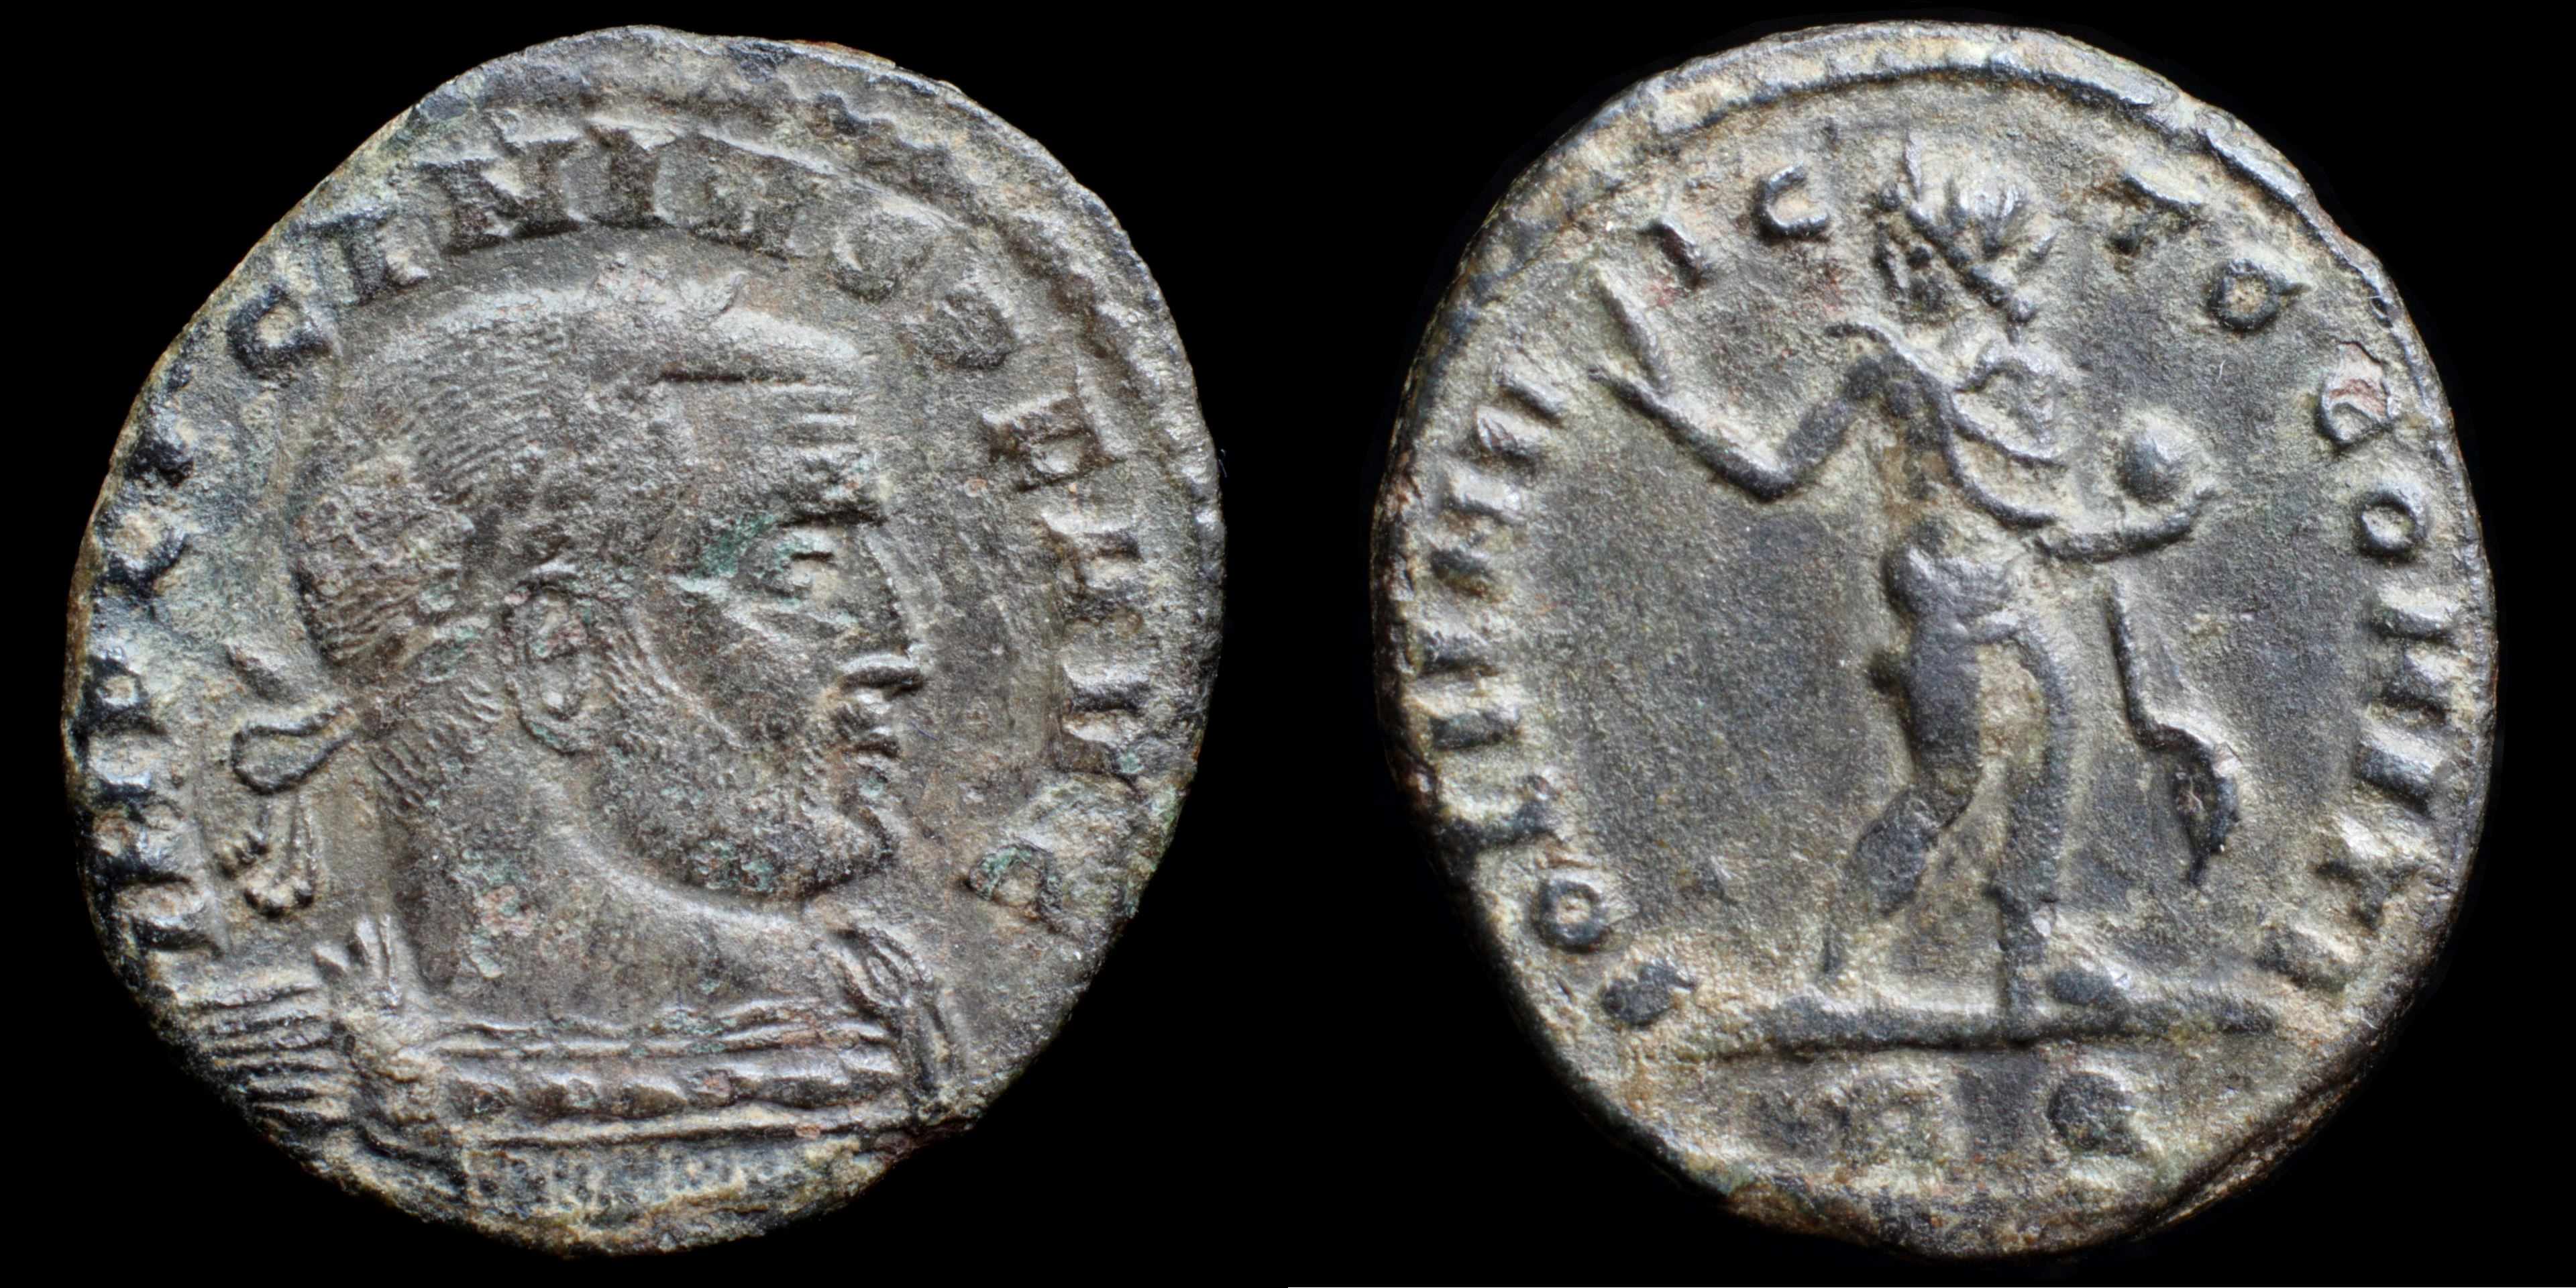 /Files/Images/Coinsite/CoinDB/377_Licinius_Rome.jpg